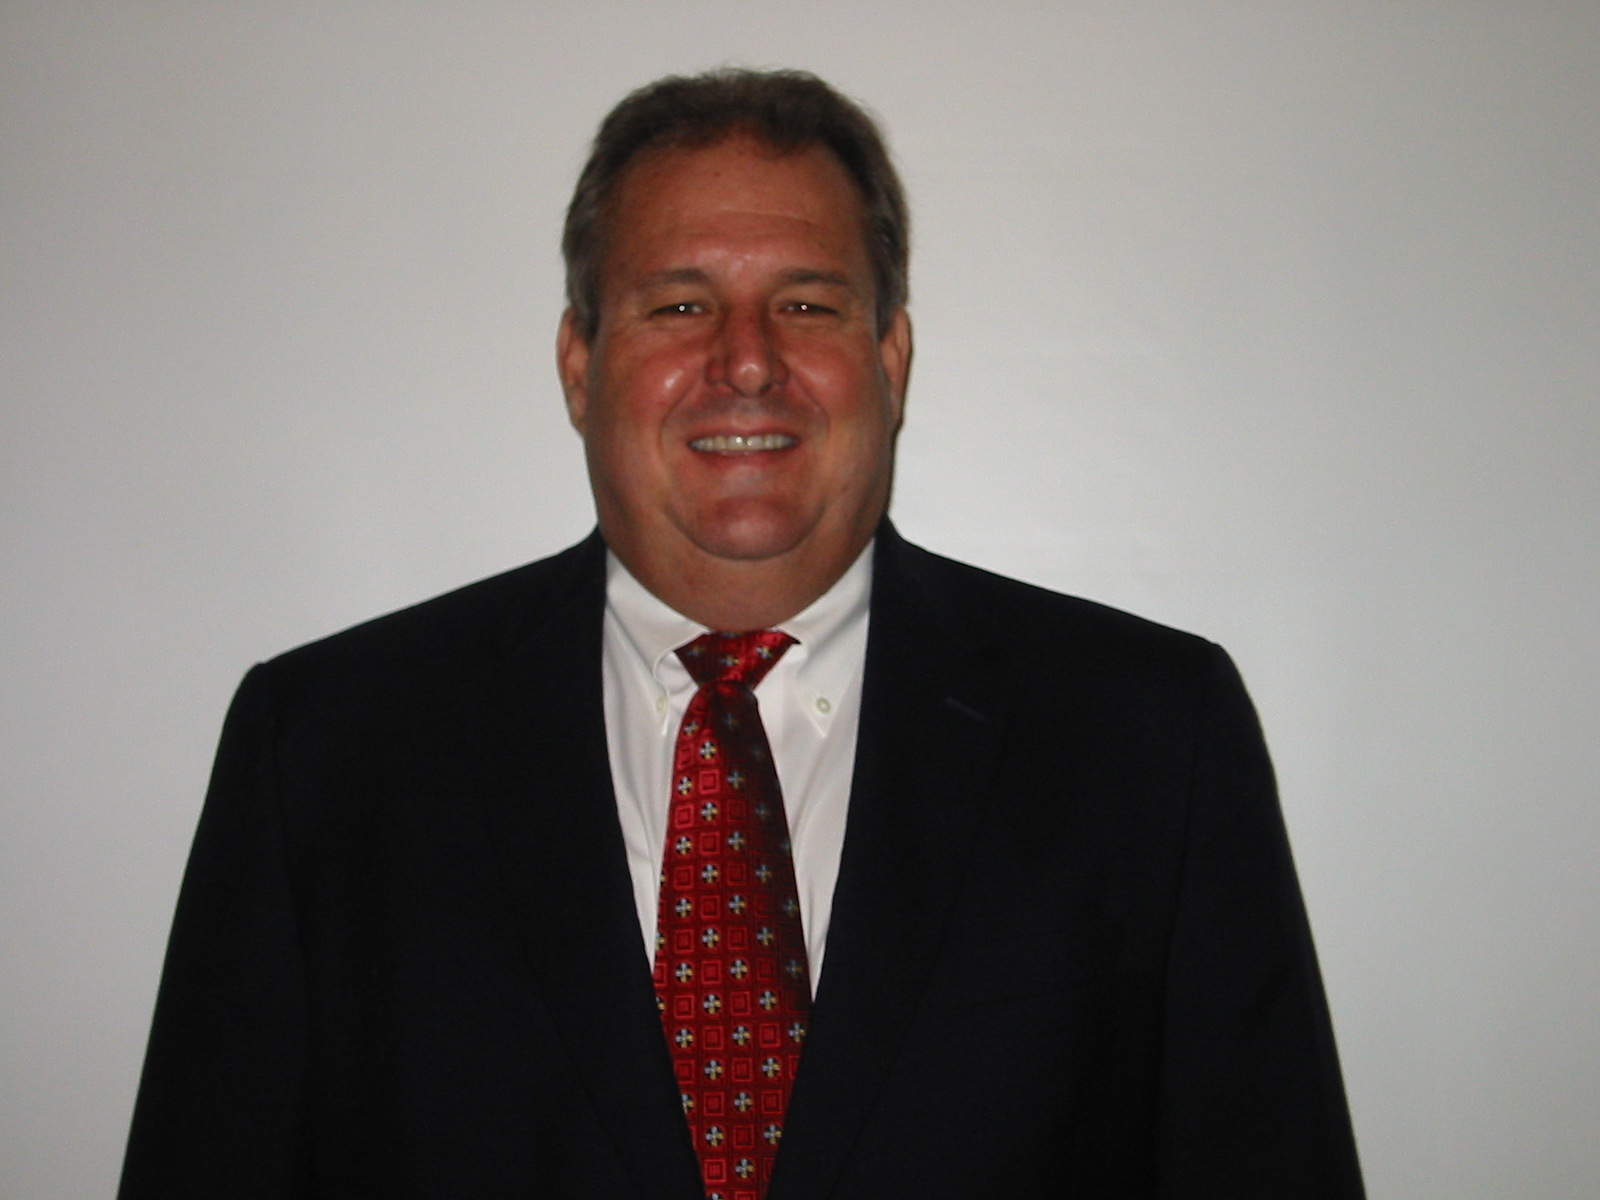 John Kellar, financial advisor Fort Lauderdale FL